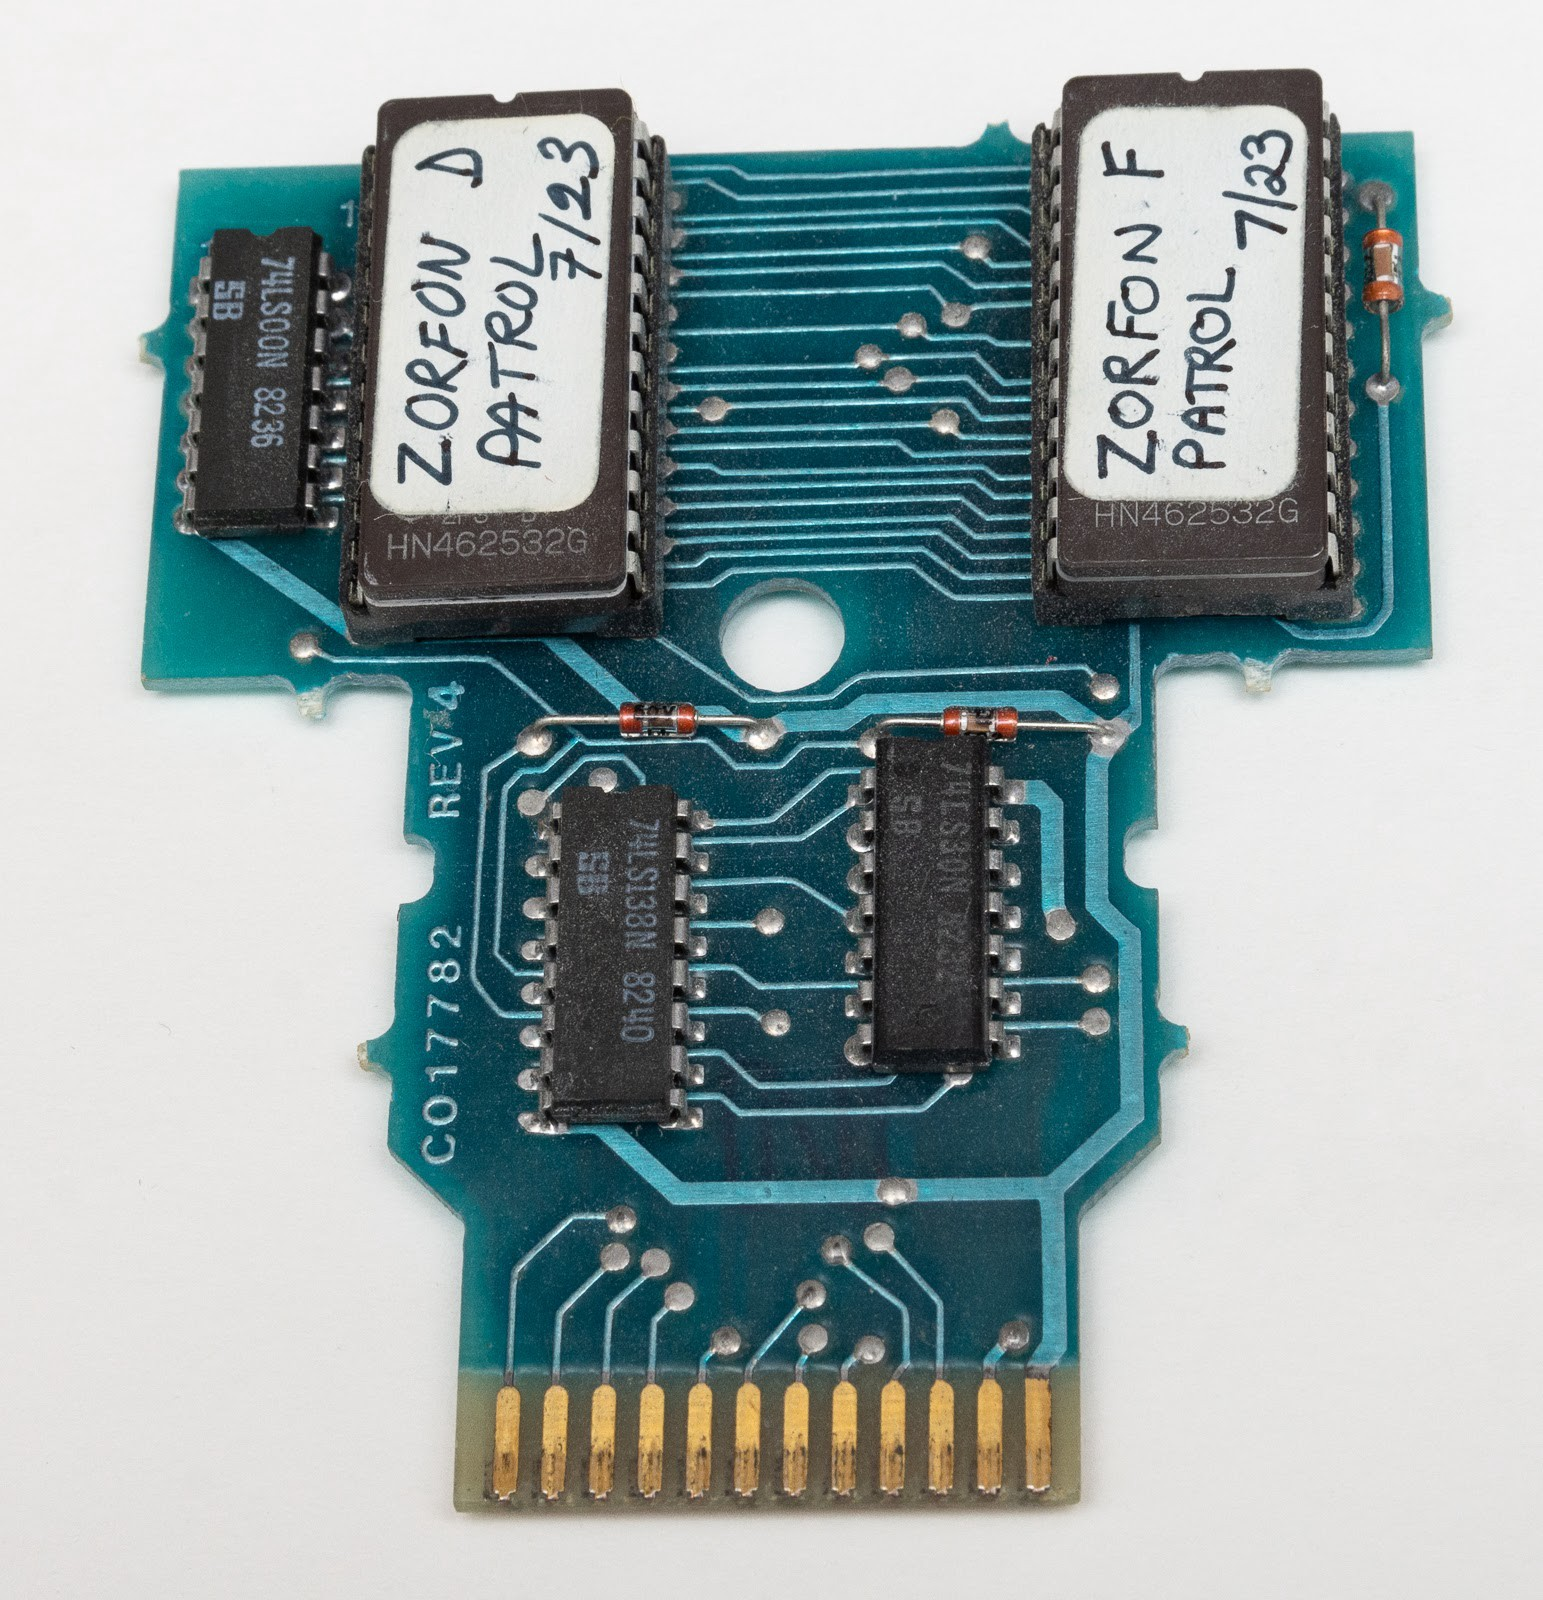 A photograph of the Zorfon Patrol PCB taken from the prototype cartridge.